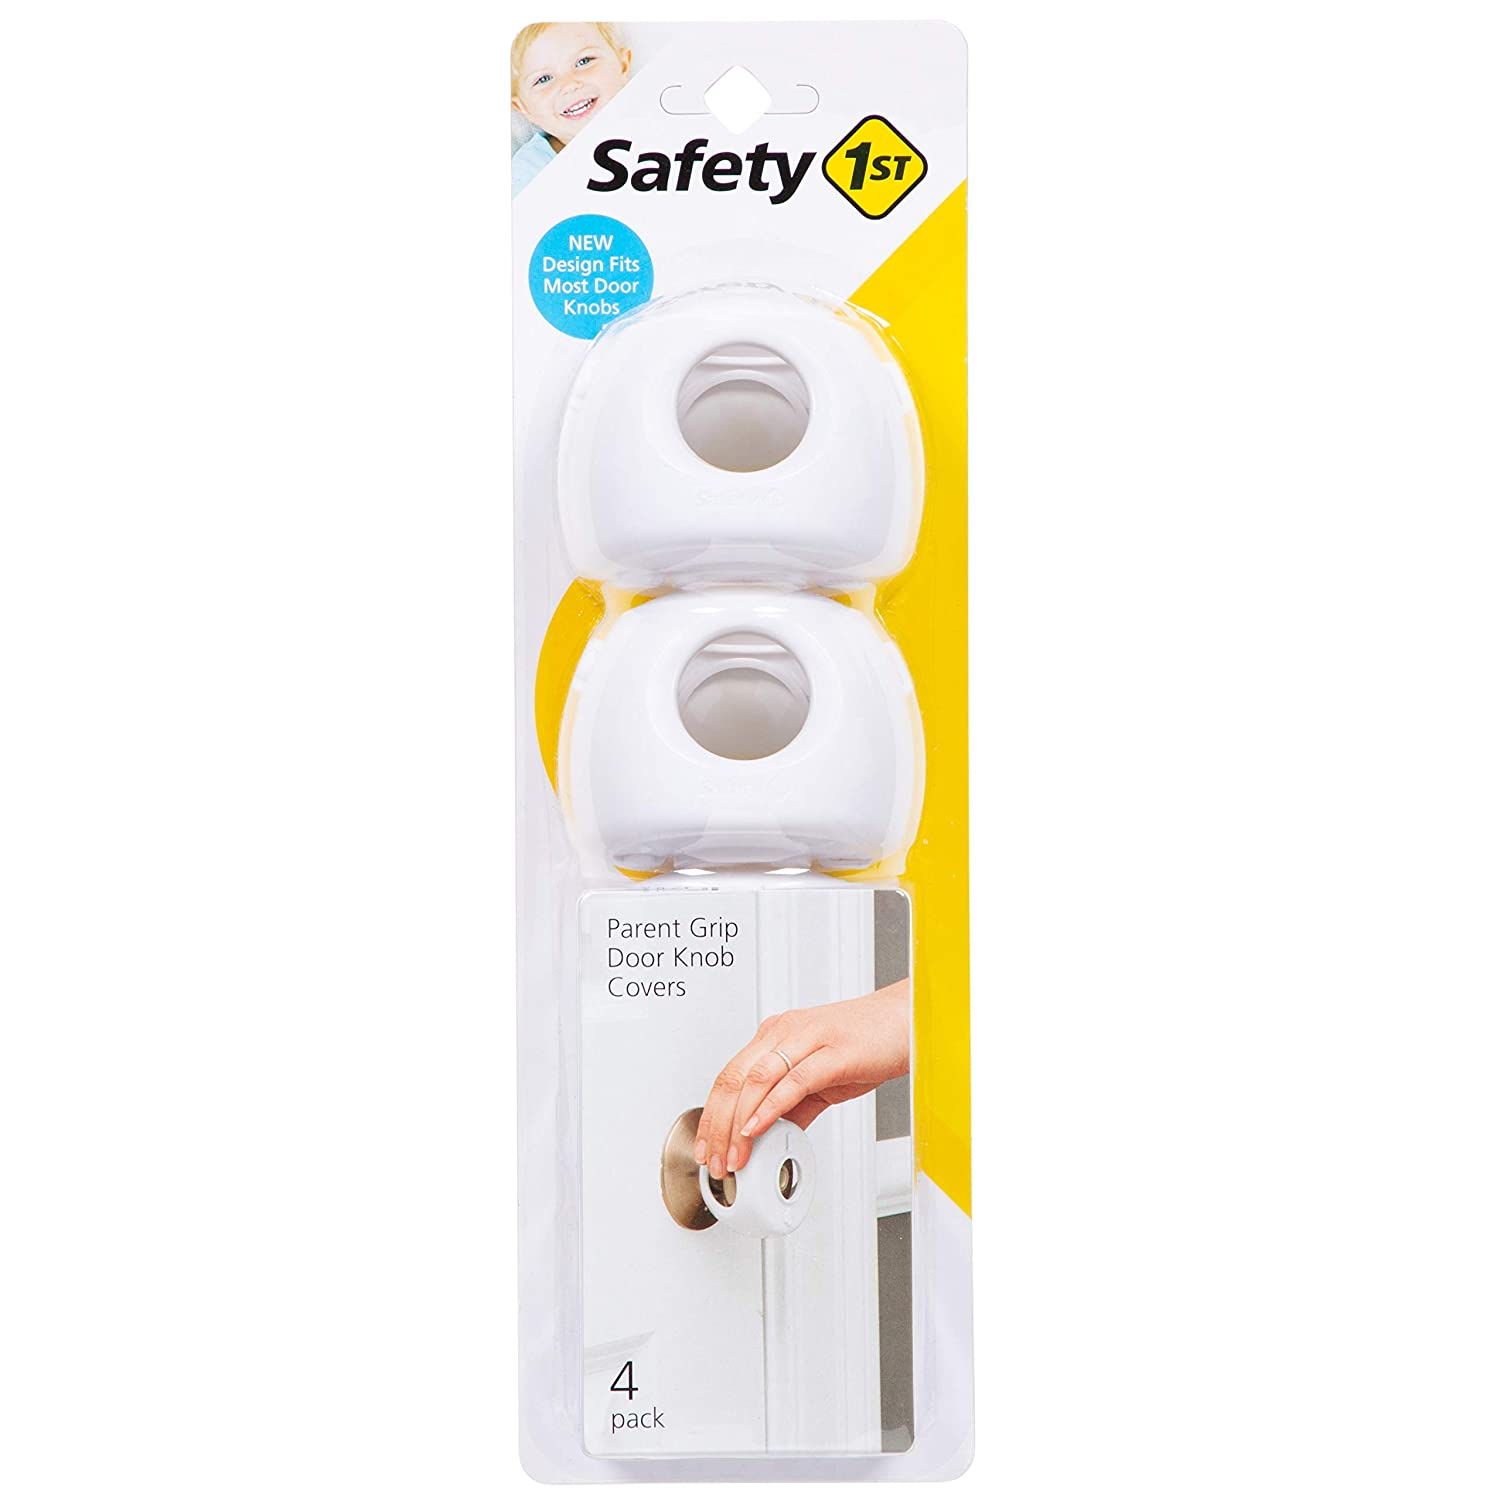 Safety 1st Parent Grip Door Knob Covers, White, One Size (Pack of 4) (HS3260600)